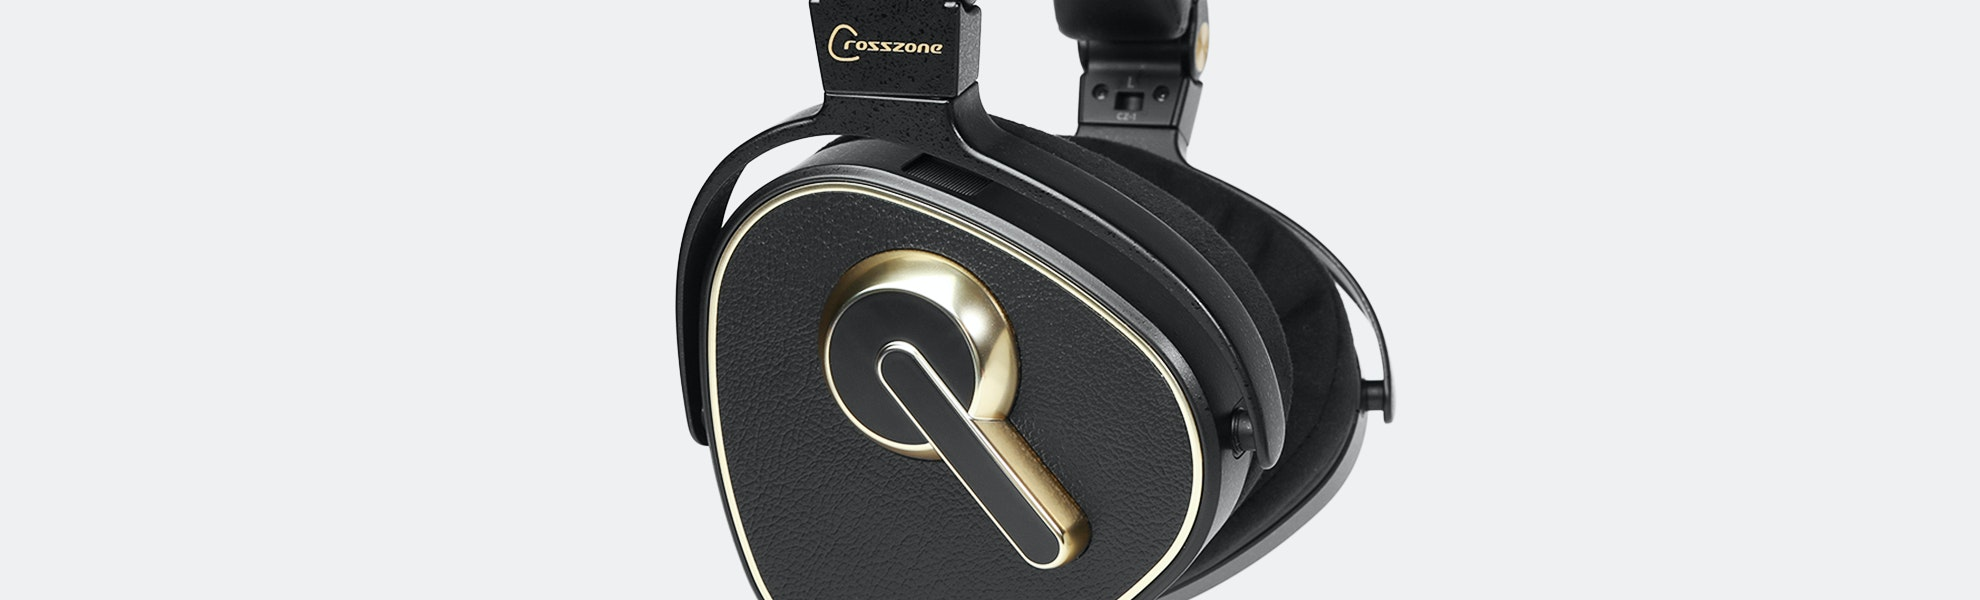 Crosszone CZ-1 Headphones